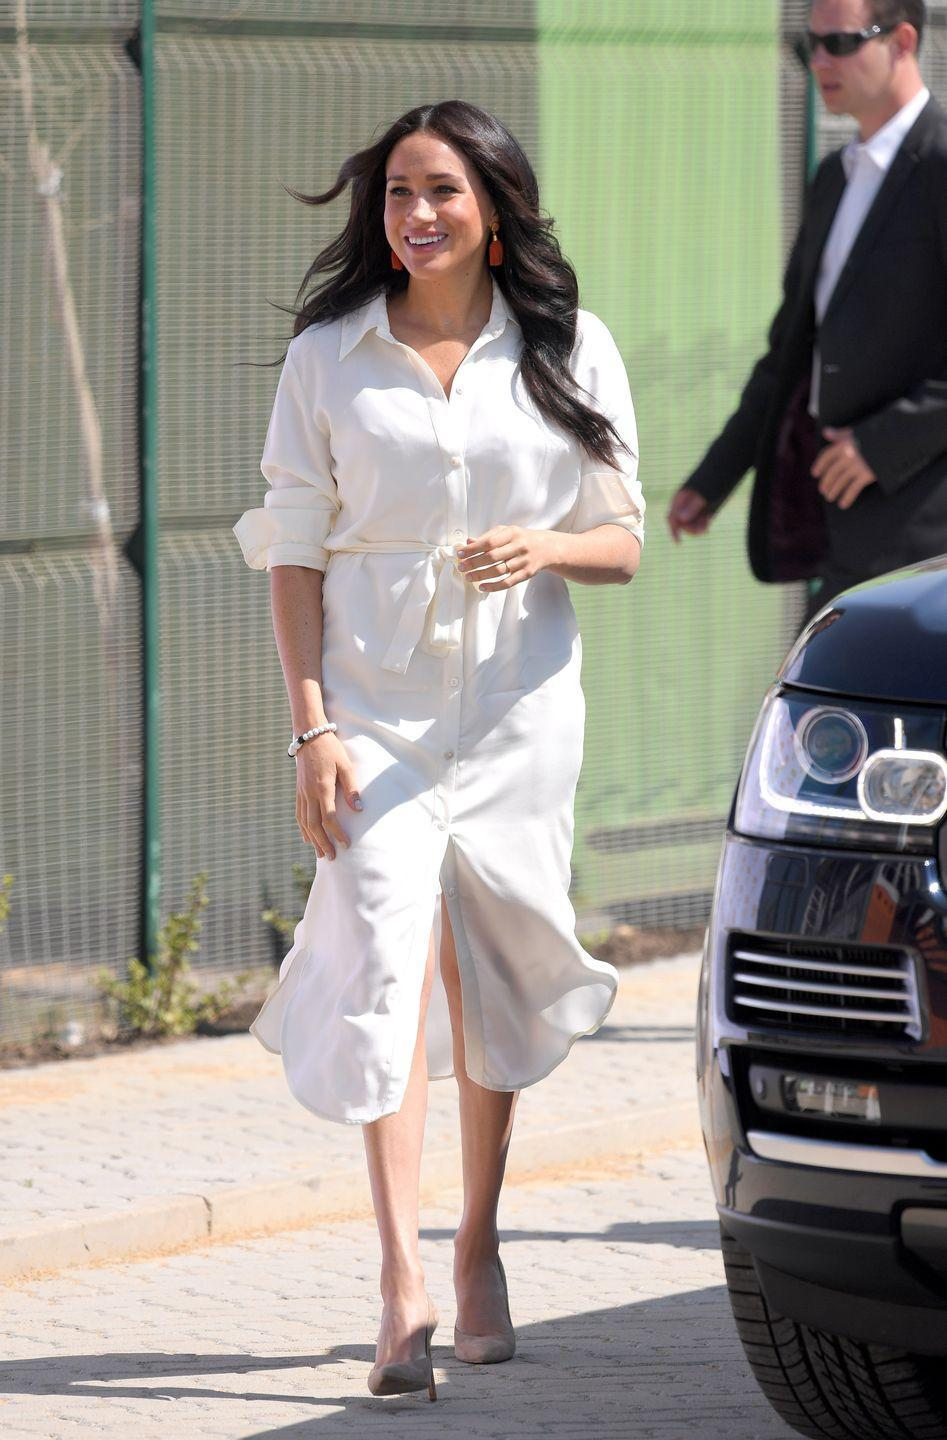 """<p>Perhaps a white shirt dress is more your speed. The Duchess wore this take on the button down while visiting Johannesberg, South Africa. The garment is by local brand Hannah Lavery, whose site now calls it the """"Meghan dress."""" Here, find the original dress (which has been known to sell out), plus a few similar options. </p><p><a class=""""link rapid-noclick-resp"""" href=""""https://www.hannahlavery.co.za/collections/dresses/products/tencilshirtdress"""" rel=""""nofollow noopener"""" target=""""_blank"""" data-ylk=""""slk:Shop Now"""">Shop Now</a></p><p><a class=""""link rapid-noclick-resp"""" href=""""https://go.redirectingat.com?id=74968X1596630&url=https%3A%2F%2Fwww.jcrew.com%2Fus%2Fp%2Fwomens_category%2Fdressesandjumpsuits%2Frelaxedfit-crisp-cotton-poplin-shirtdress%2FAY158&sref=https%3A%2F%2Fwww.townandcountrymag.com%2Fsociety%2Ftradition%2Fg36386449%2Fmeghan-markle-white-button-down-shirts%2F"""" rel=""""nofollow noopener"""" target=""""_blank"""" data-ylk=""""slk:Shop a Similar Style"""">Shop a Similar Style</a></p><p><a class=""""link rapid-noclick-resp"""" href=""""https://go.redirectingat.com?id=74968X1596630&url=https%3A%2F%2Fwww.bergdorfgoodman.com%2Fp%2Flagence-cameron-linen-long-shirtdress-prod165150084&sref=https%3A%2F%2Fwww.townandcountrymag.com%2Fsociety%2Ftradition%2Fg36386449%2Fmeghan-markle-white-button-down-shirts%2F"""" rel=""""nofollow noopener"""" target=""""_blank"""" data-ylk=""""slk:Shop a Similar Style"""">Shop a Similar Style</a></p><p><a class=""""link rapid-noclick-resp"""" href=""""https://go.redirectingat.com?id=74968X1596630&url=https%3A%2F%2Fveronicabeard.com%2Fproducts%2Fcita-dress&sref=https%3A%2F%2Fwww.townandcountrymag.com%2Fsociety%2Ftradition%2Fg36386449%2Fmeghan-markle-white-button-down-shirts%2F"""" rel=""""nofollow noopener"""" target=""""_blank"""" data-ylk=""""slk:Shop a Similar Style"""">Shop a Similar Style</a></p>"""